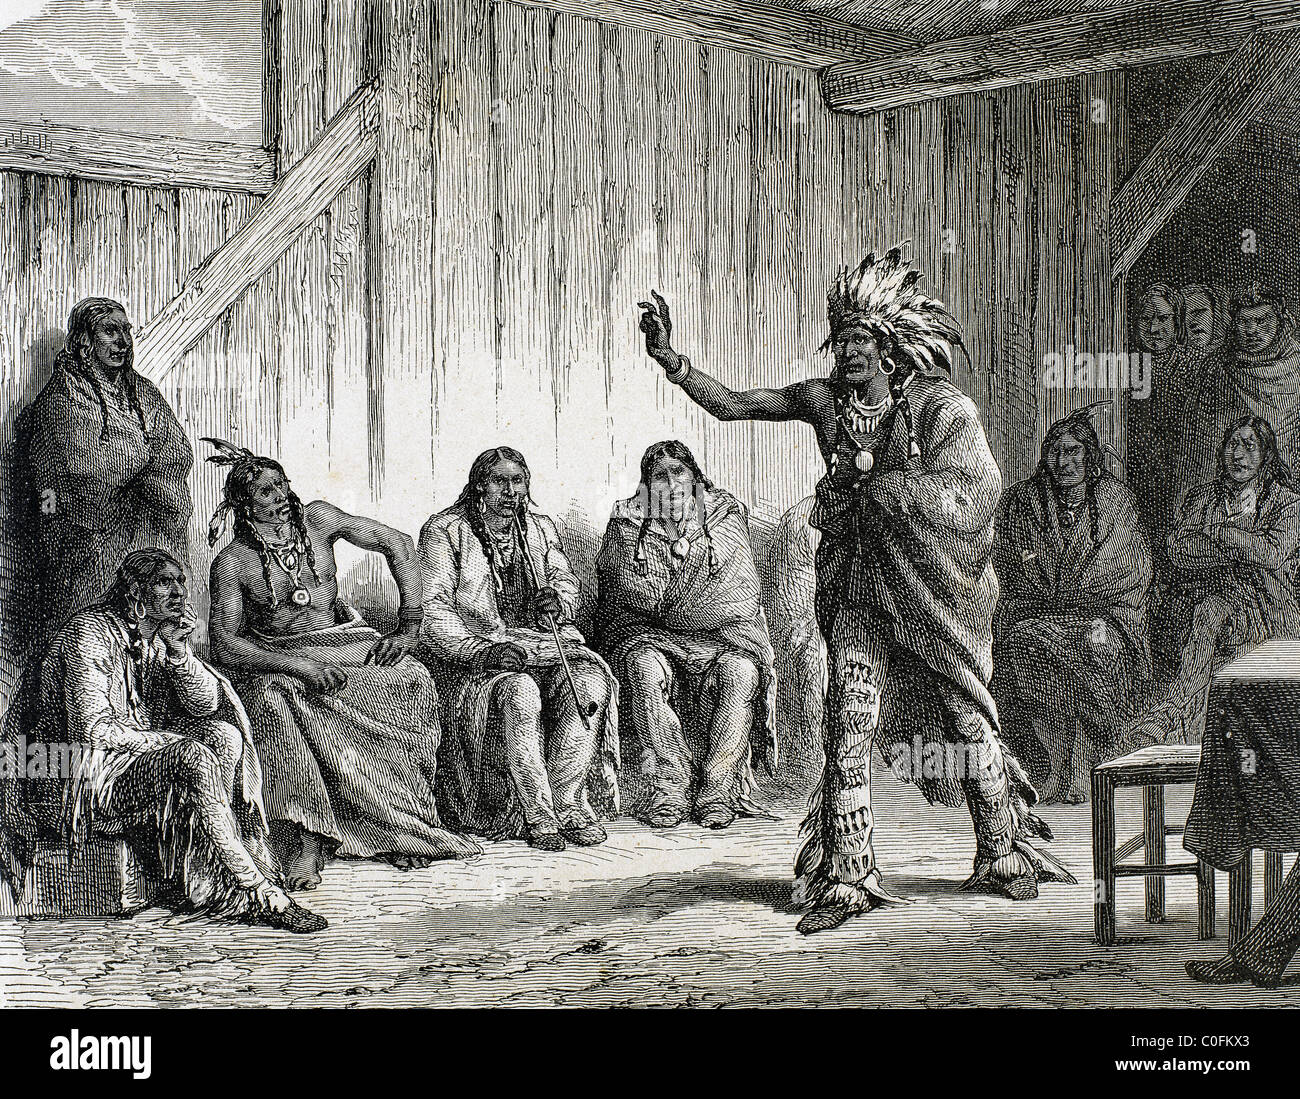 The Grand Council of the Ravens at Fort Laramie. Engraving by Guachard in 1881. USA. - Stock Image